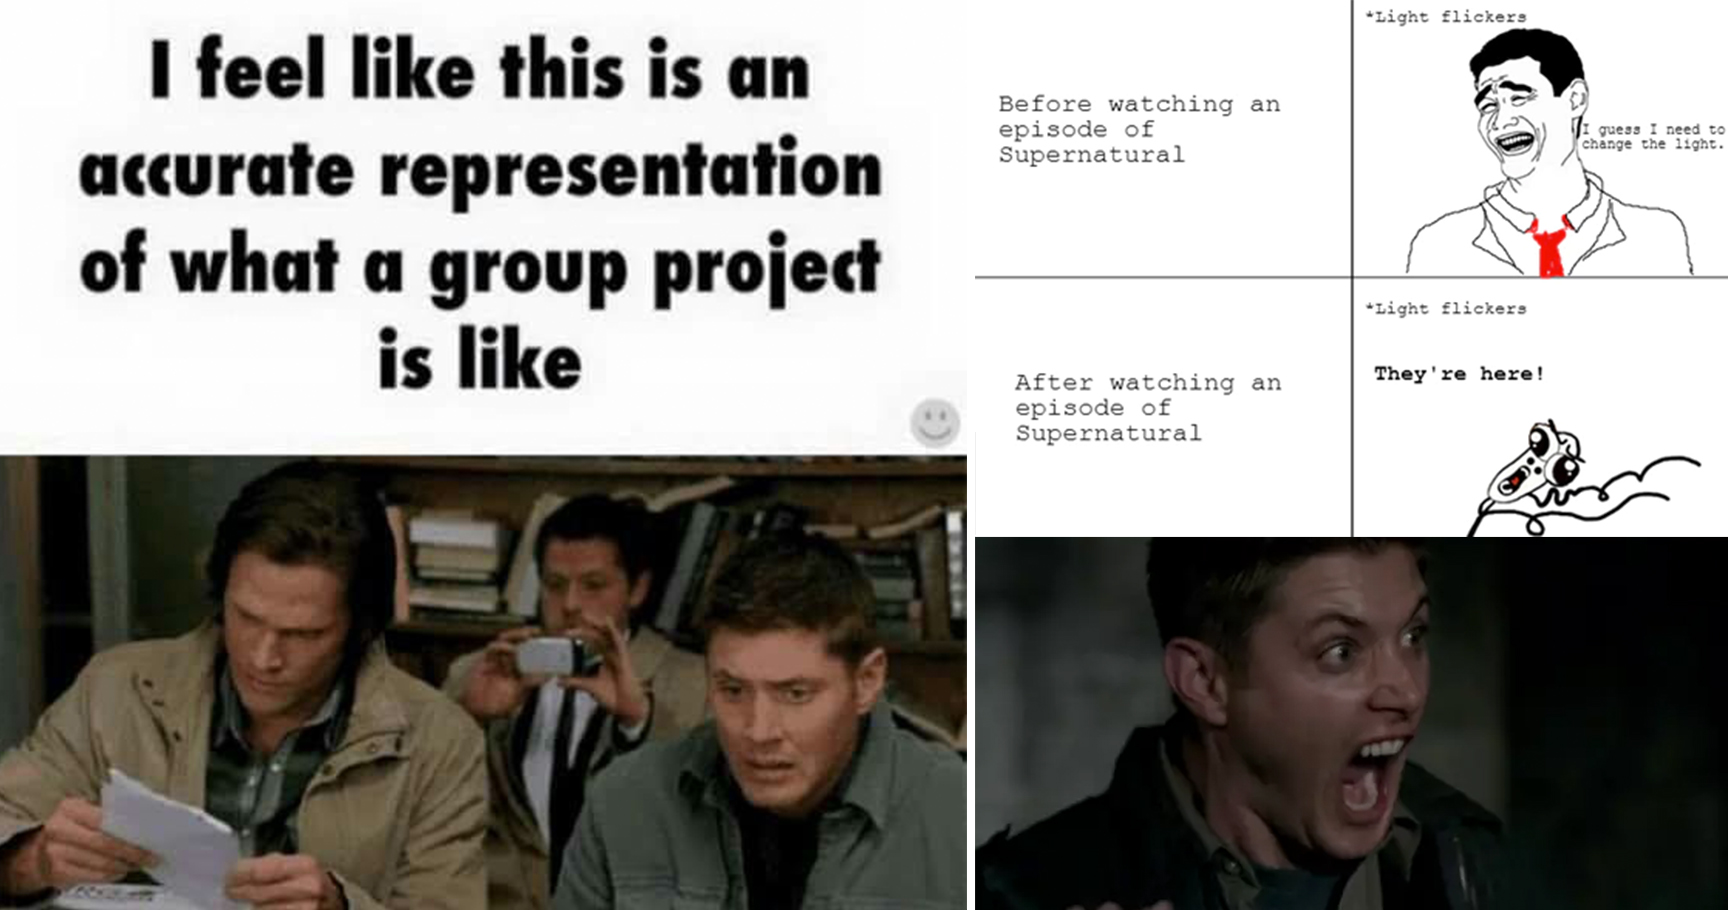 15 supernatural memes that will make any fan rotf with